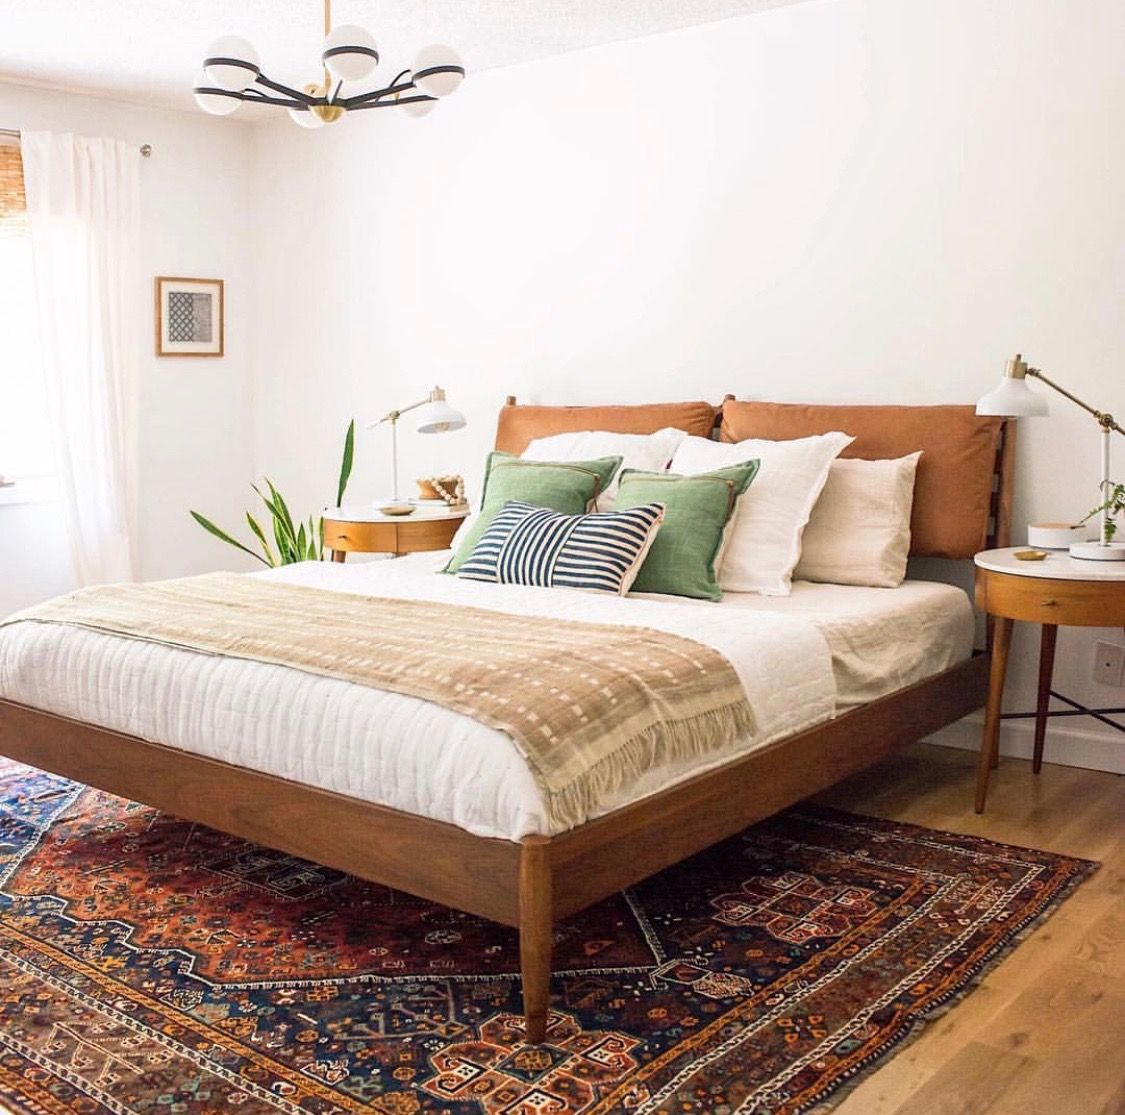 Bedroom With Modern Bed Frame Persian Carpet Unique Light